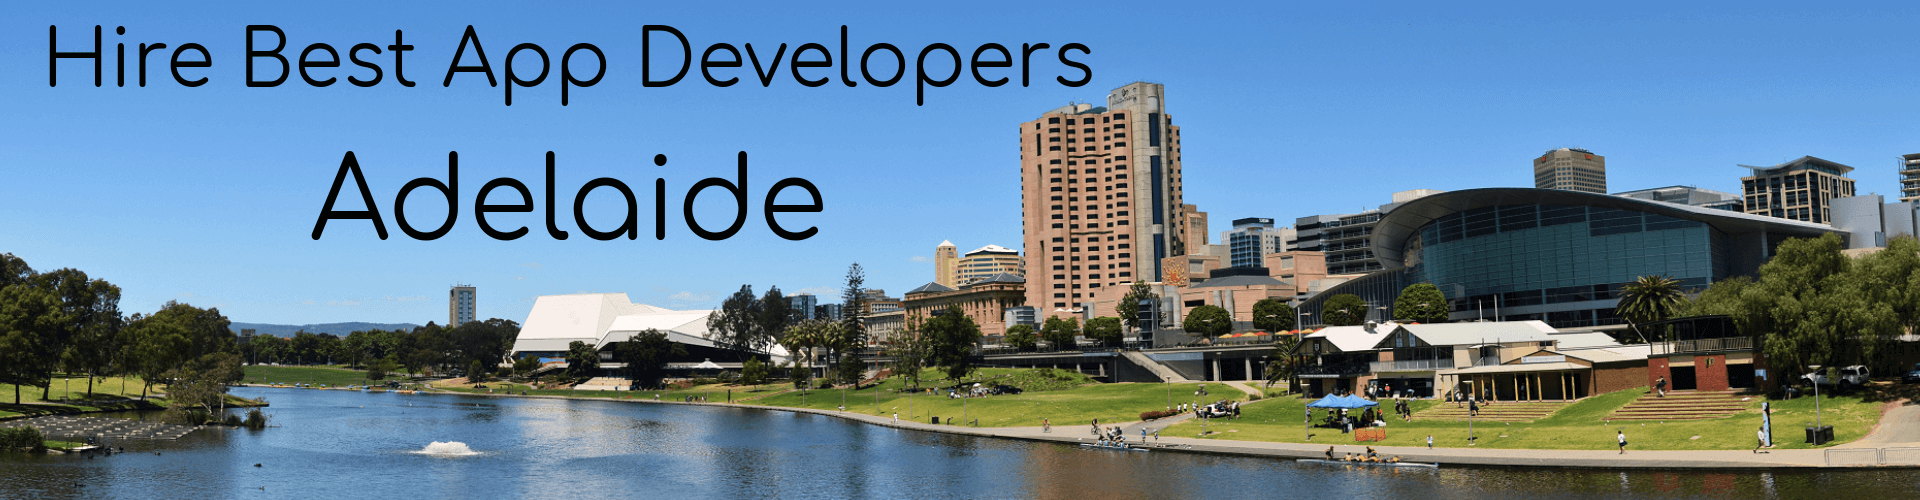 mobile app development company adelaide